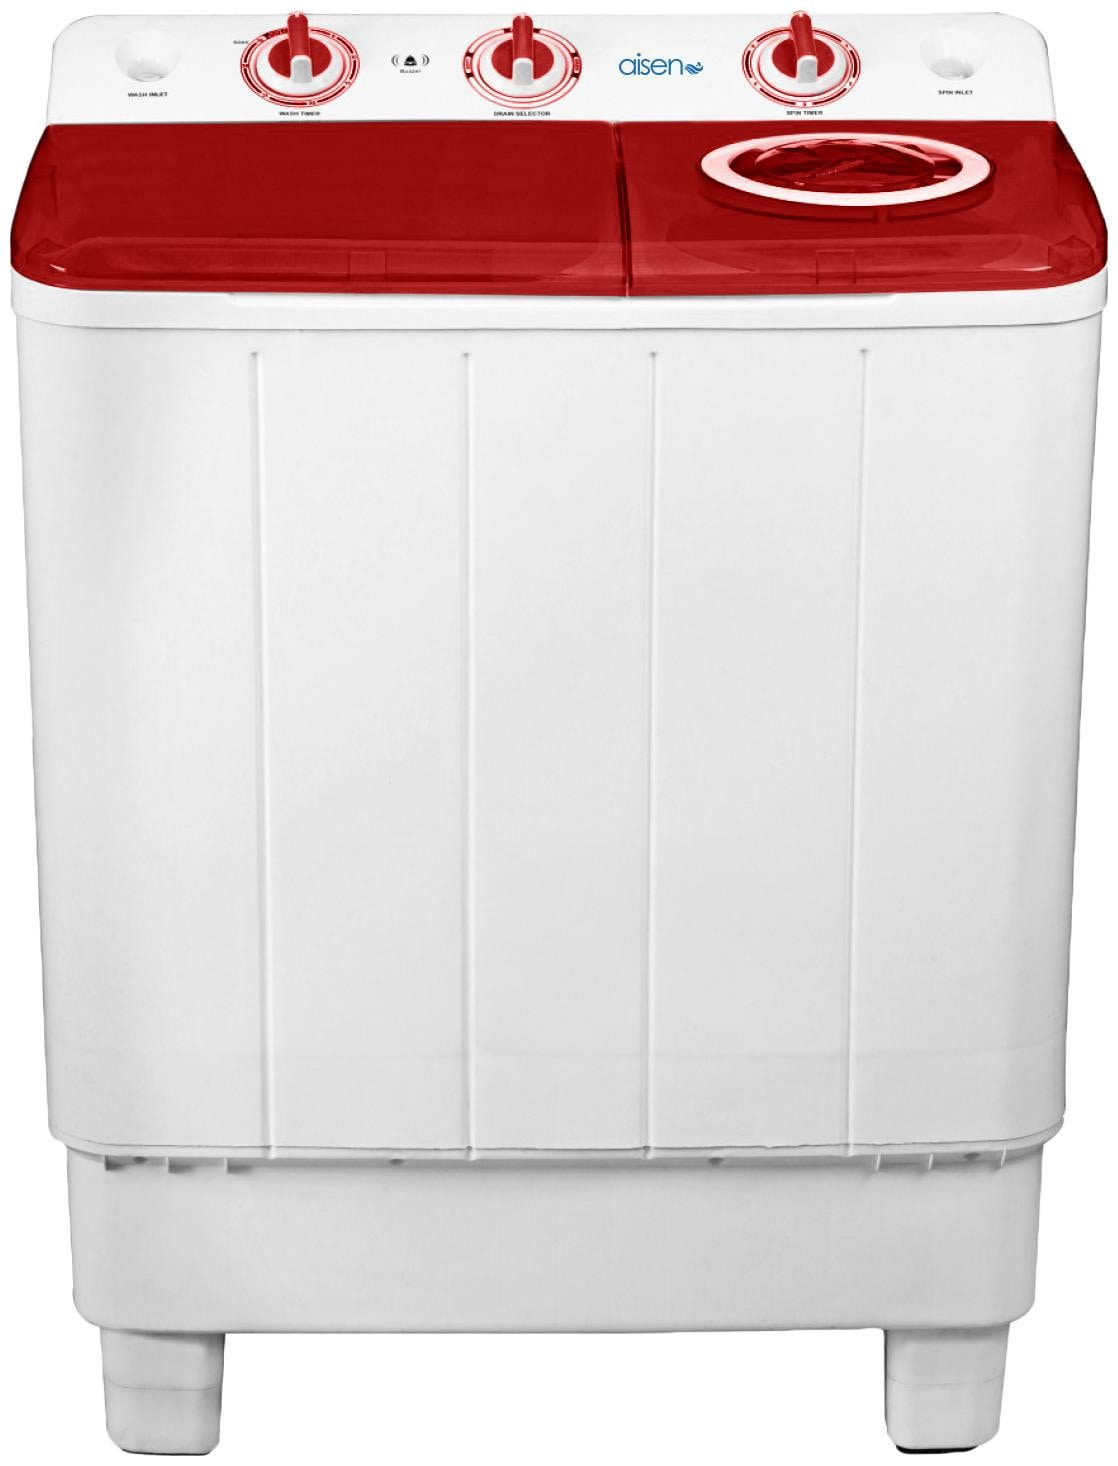 Aisen 7 kg Semi Automatic Top Load Washing Machine (A70SWM600-M, Maroon & White)